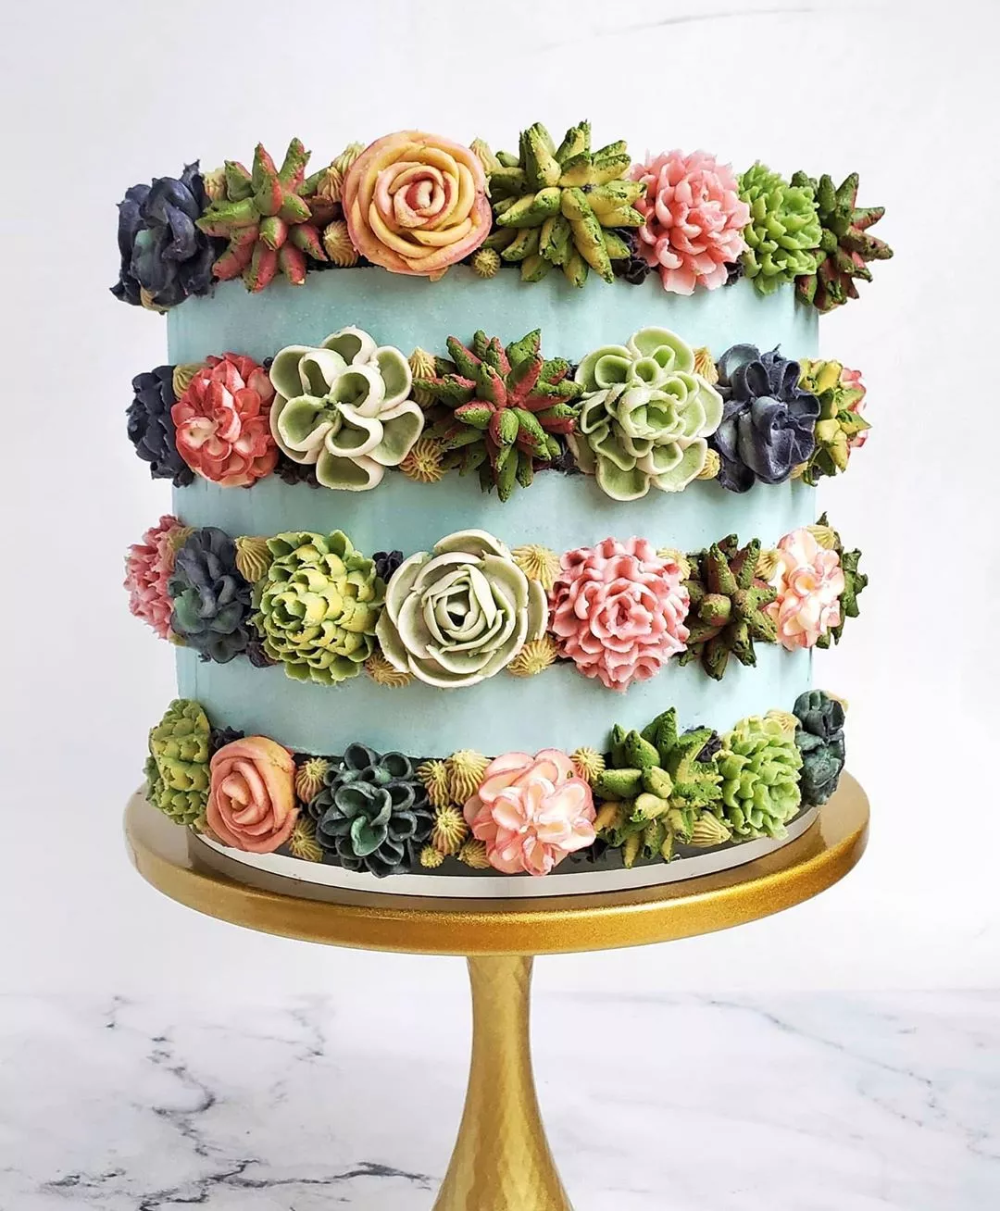 Incredibly Detailed Succulent Cakes Are Too Pretty To Eat